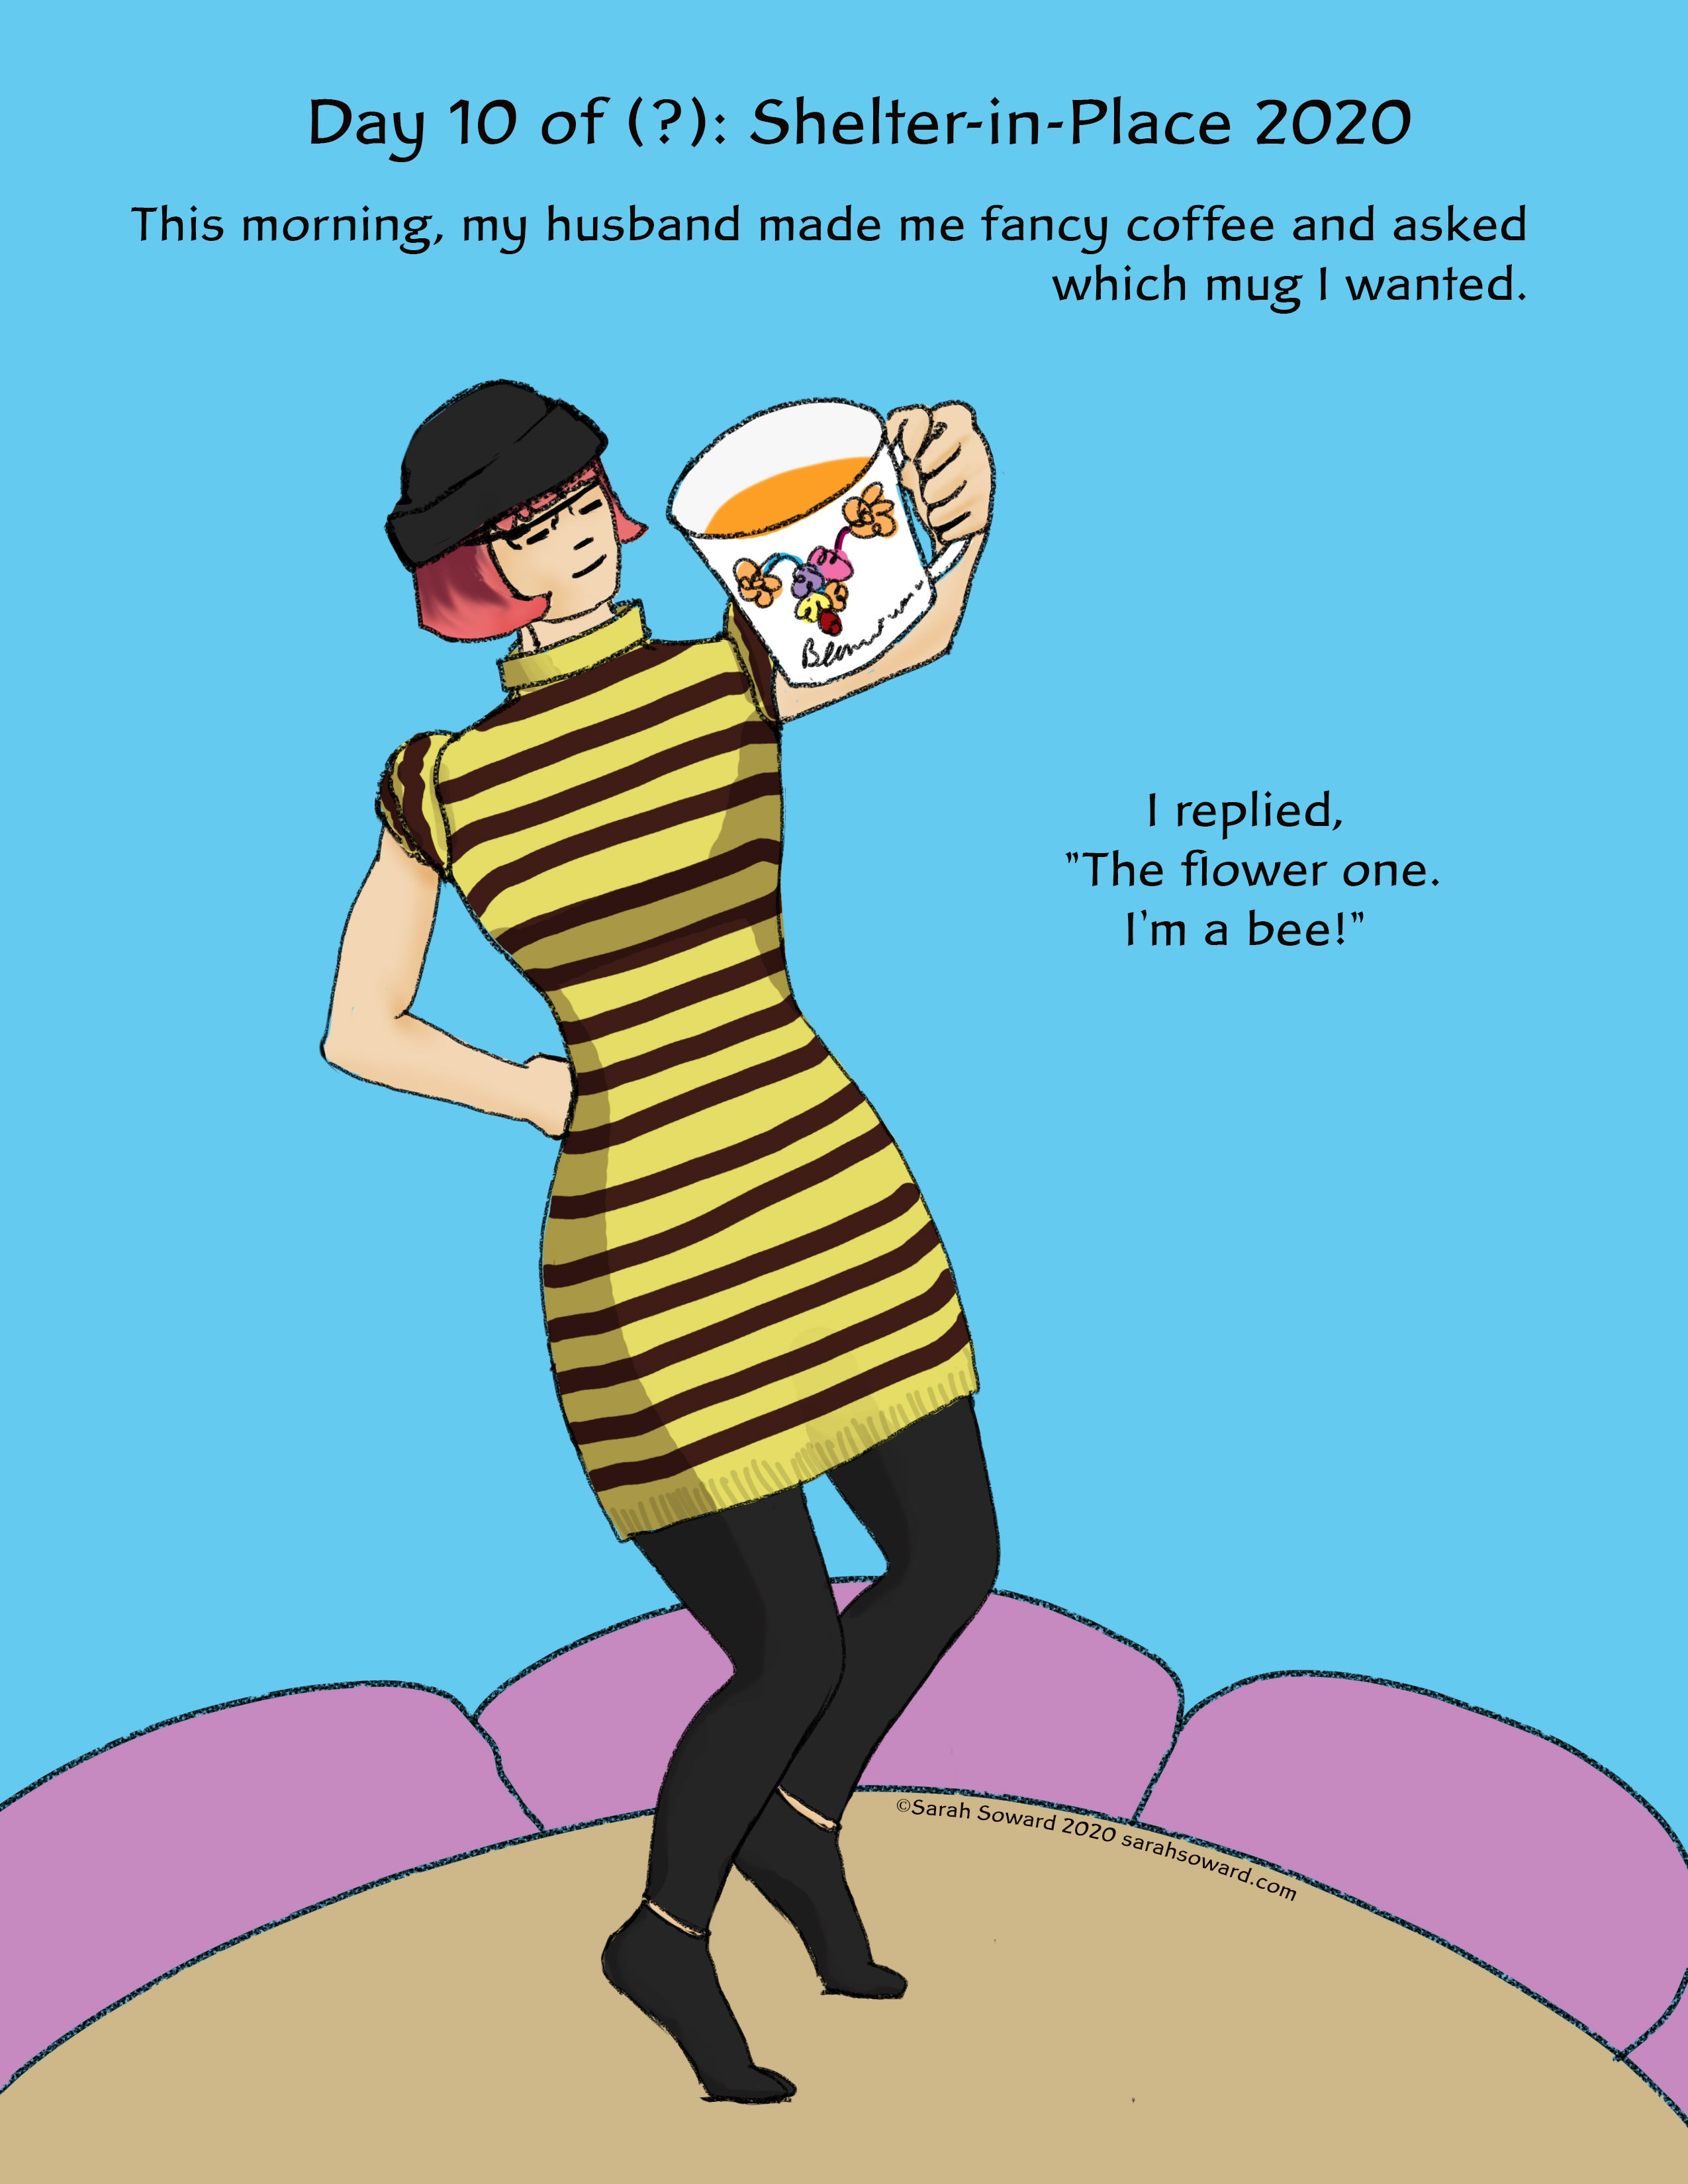 Image of a woman in a striped dress standing in a giant flower holding a much. The text reads, This morning, my husband made me fancy coffee and asked which mug I wanted. I replied, The flower one. I'm a bee!